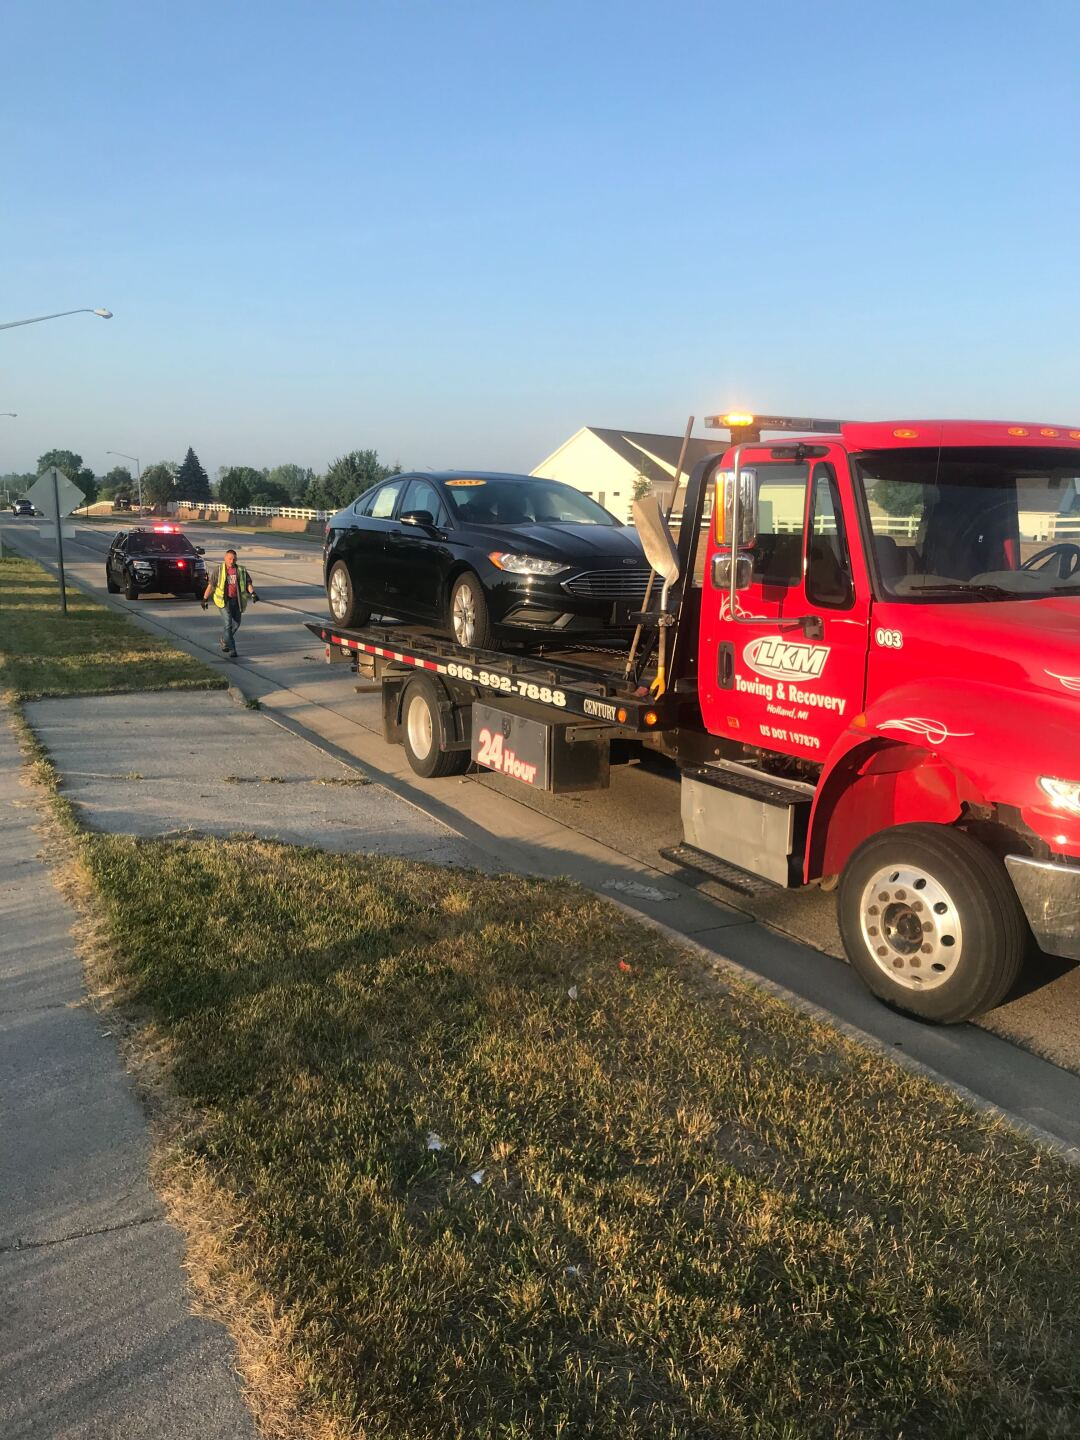 Used car found in Wyoming after pursuit following car dealership break-in